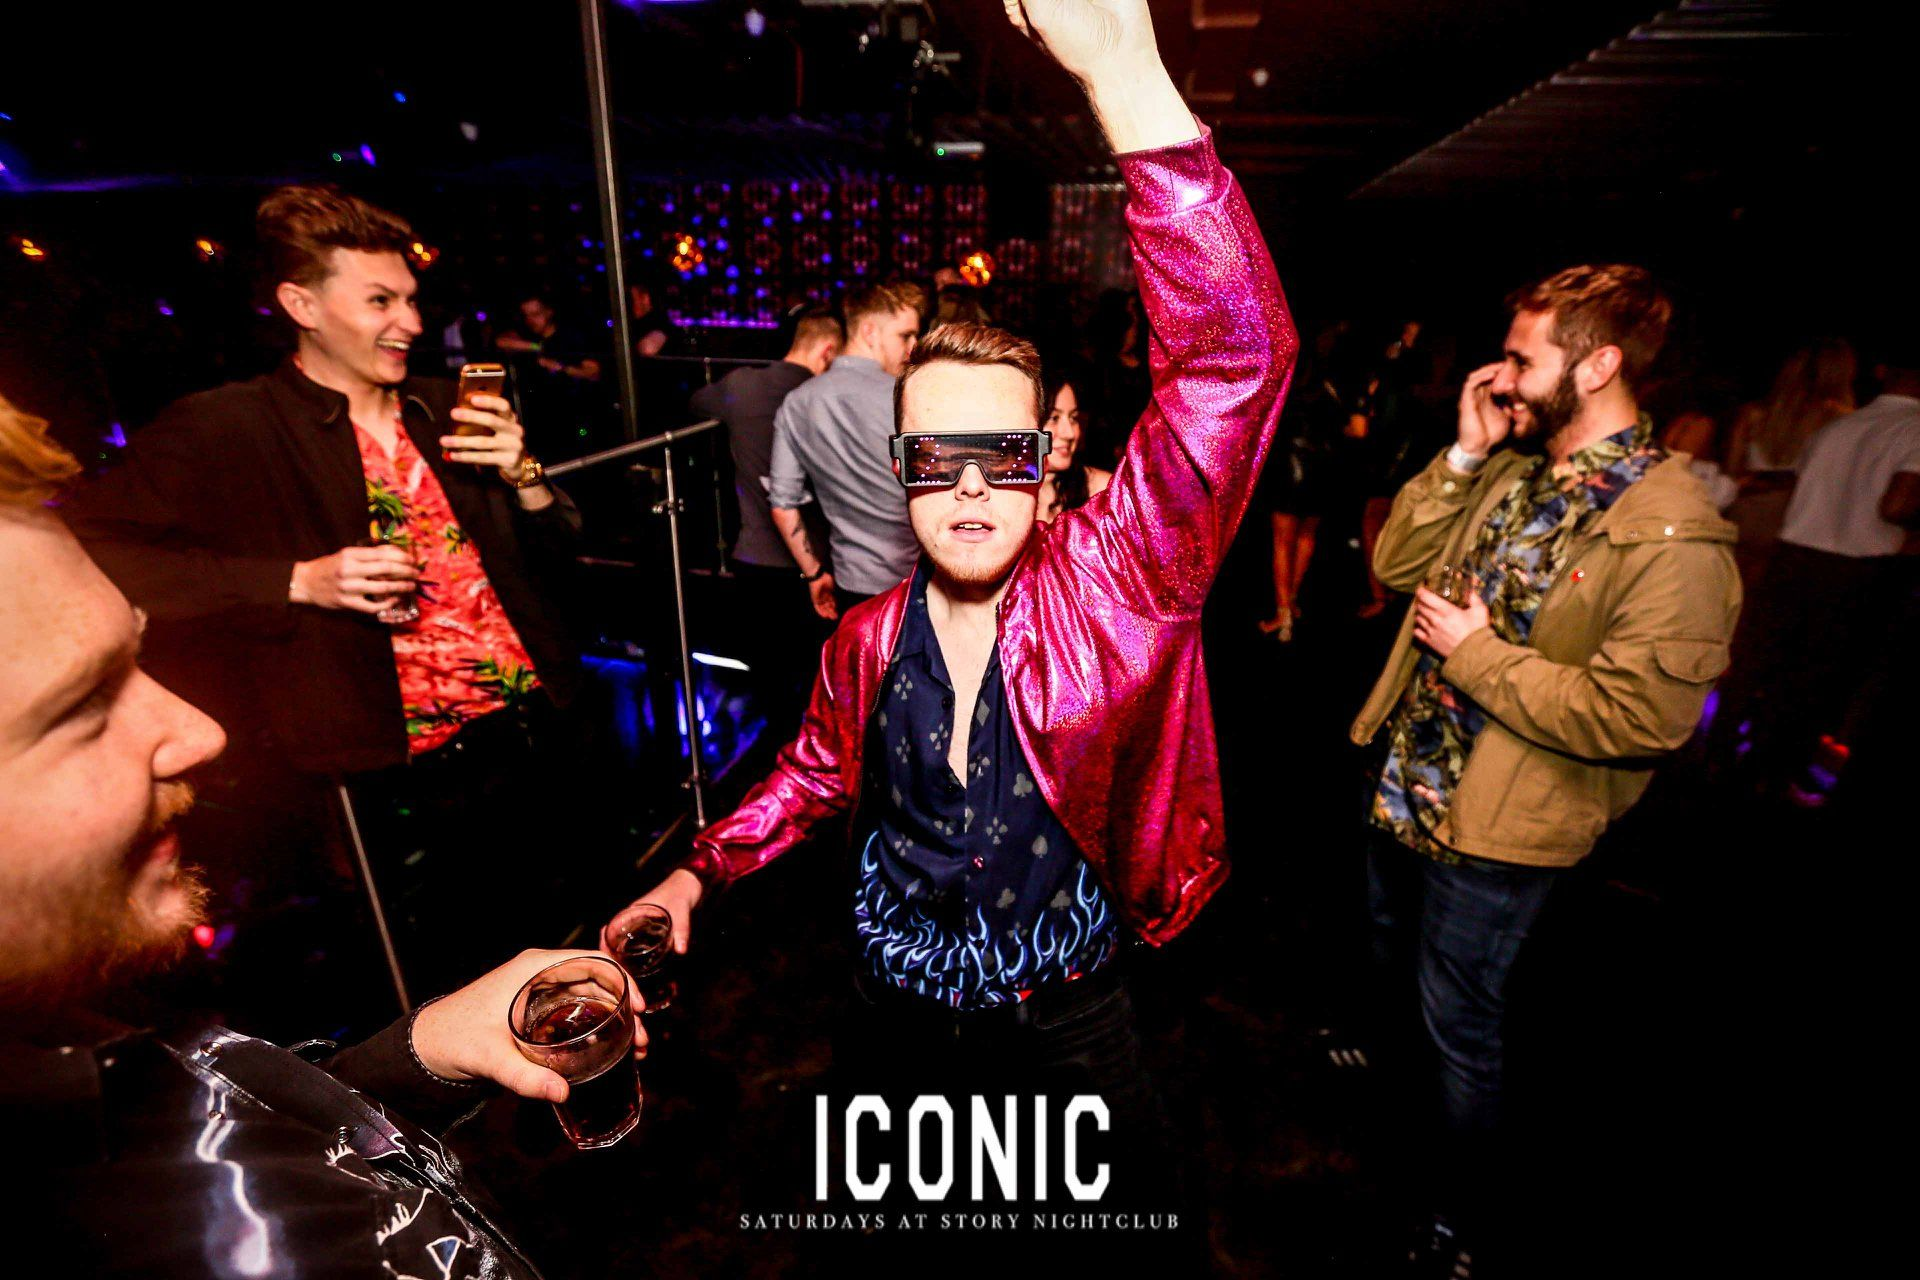 Image may contain: Leisure Activities, Paper, Brochure, Flyer, Advertisement, Poster, Musician, Musical Instrument, Night Club, Club, Sunglasses, Accessories, Accessory, Person, Human